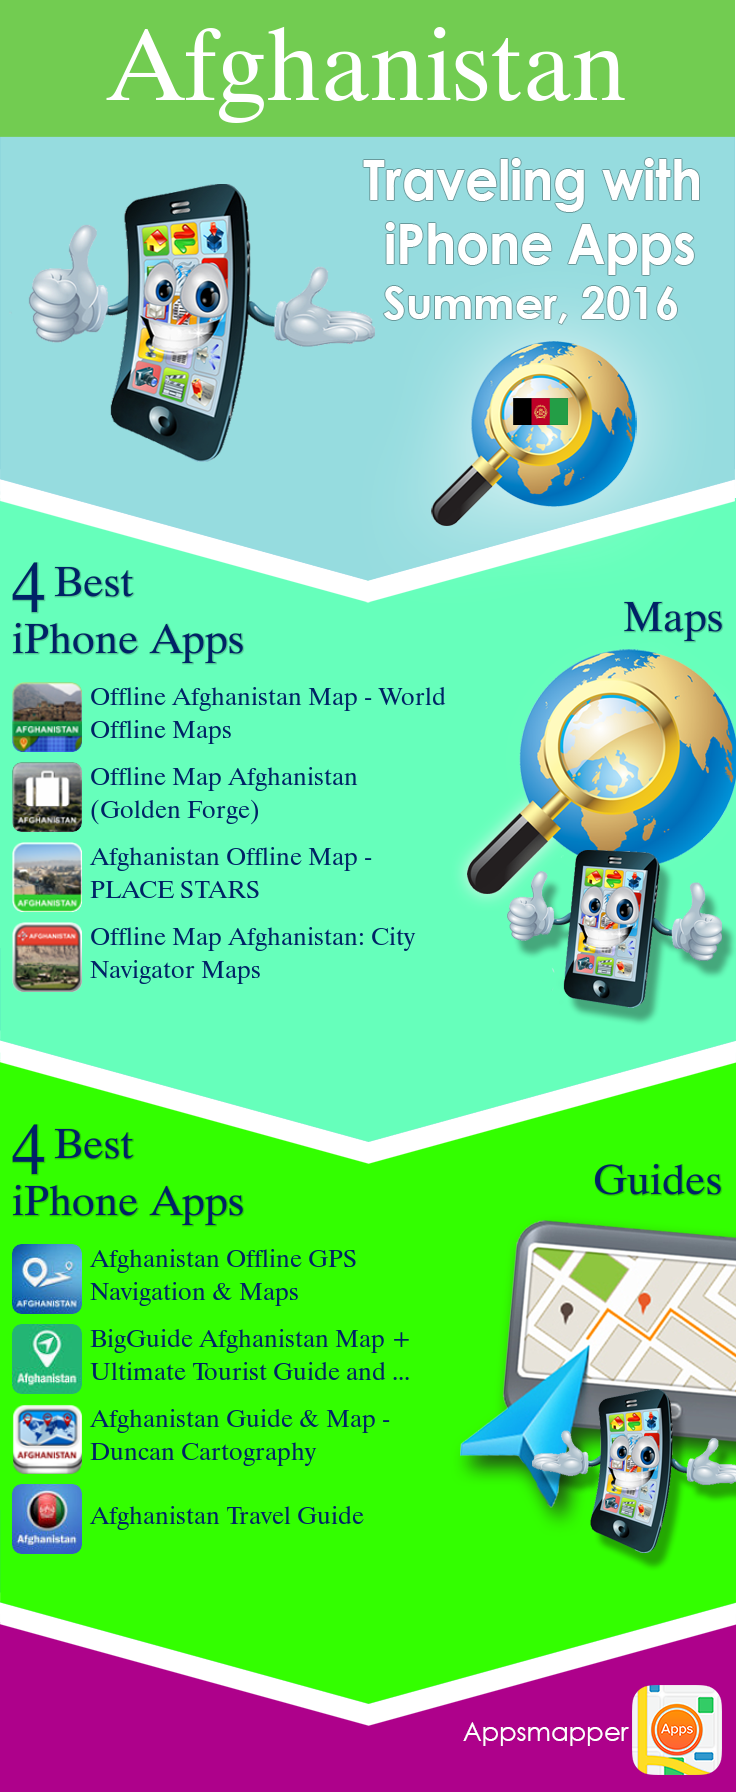 Afghanistan Iphone Apps Travel Guides Maps Transportation